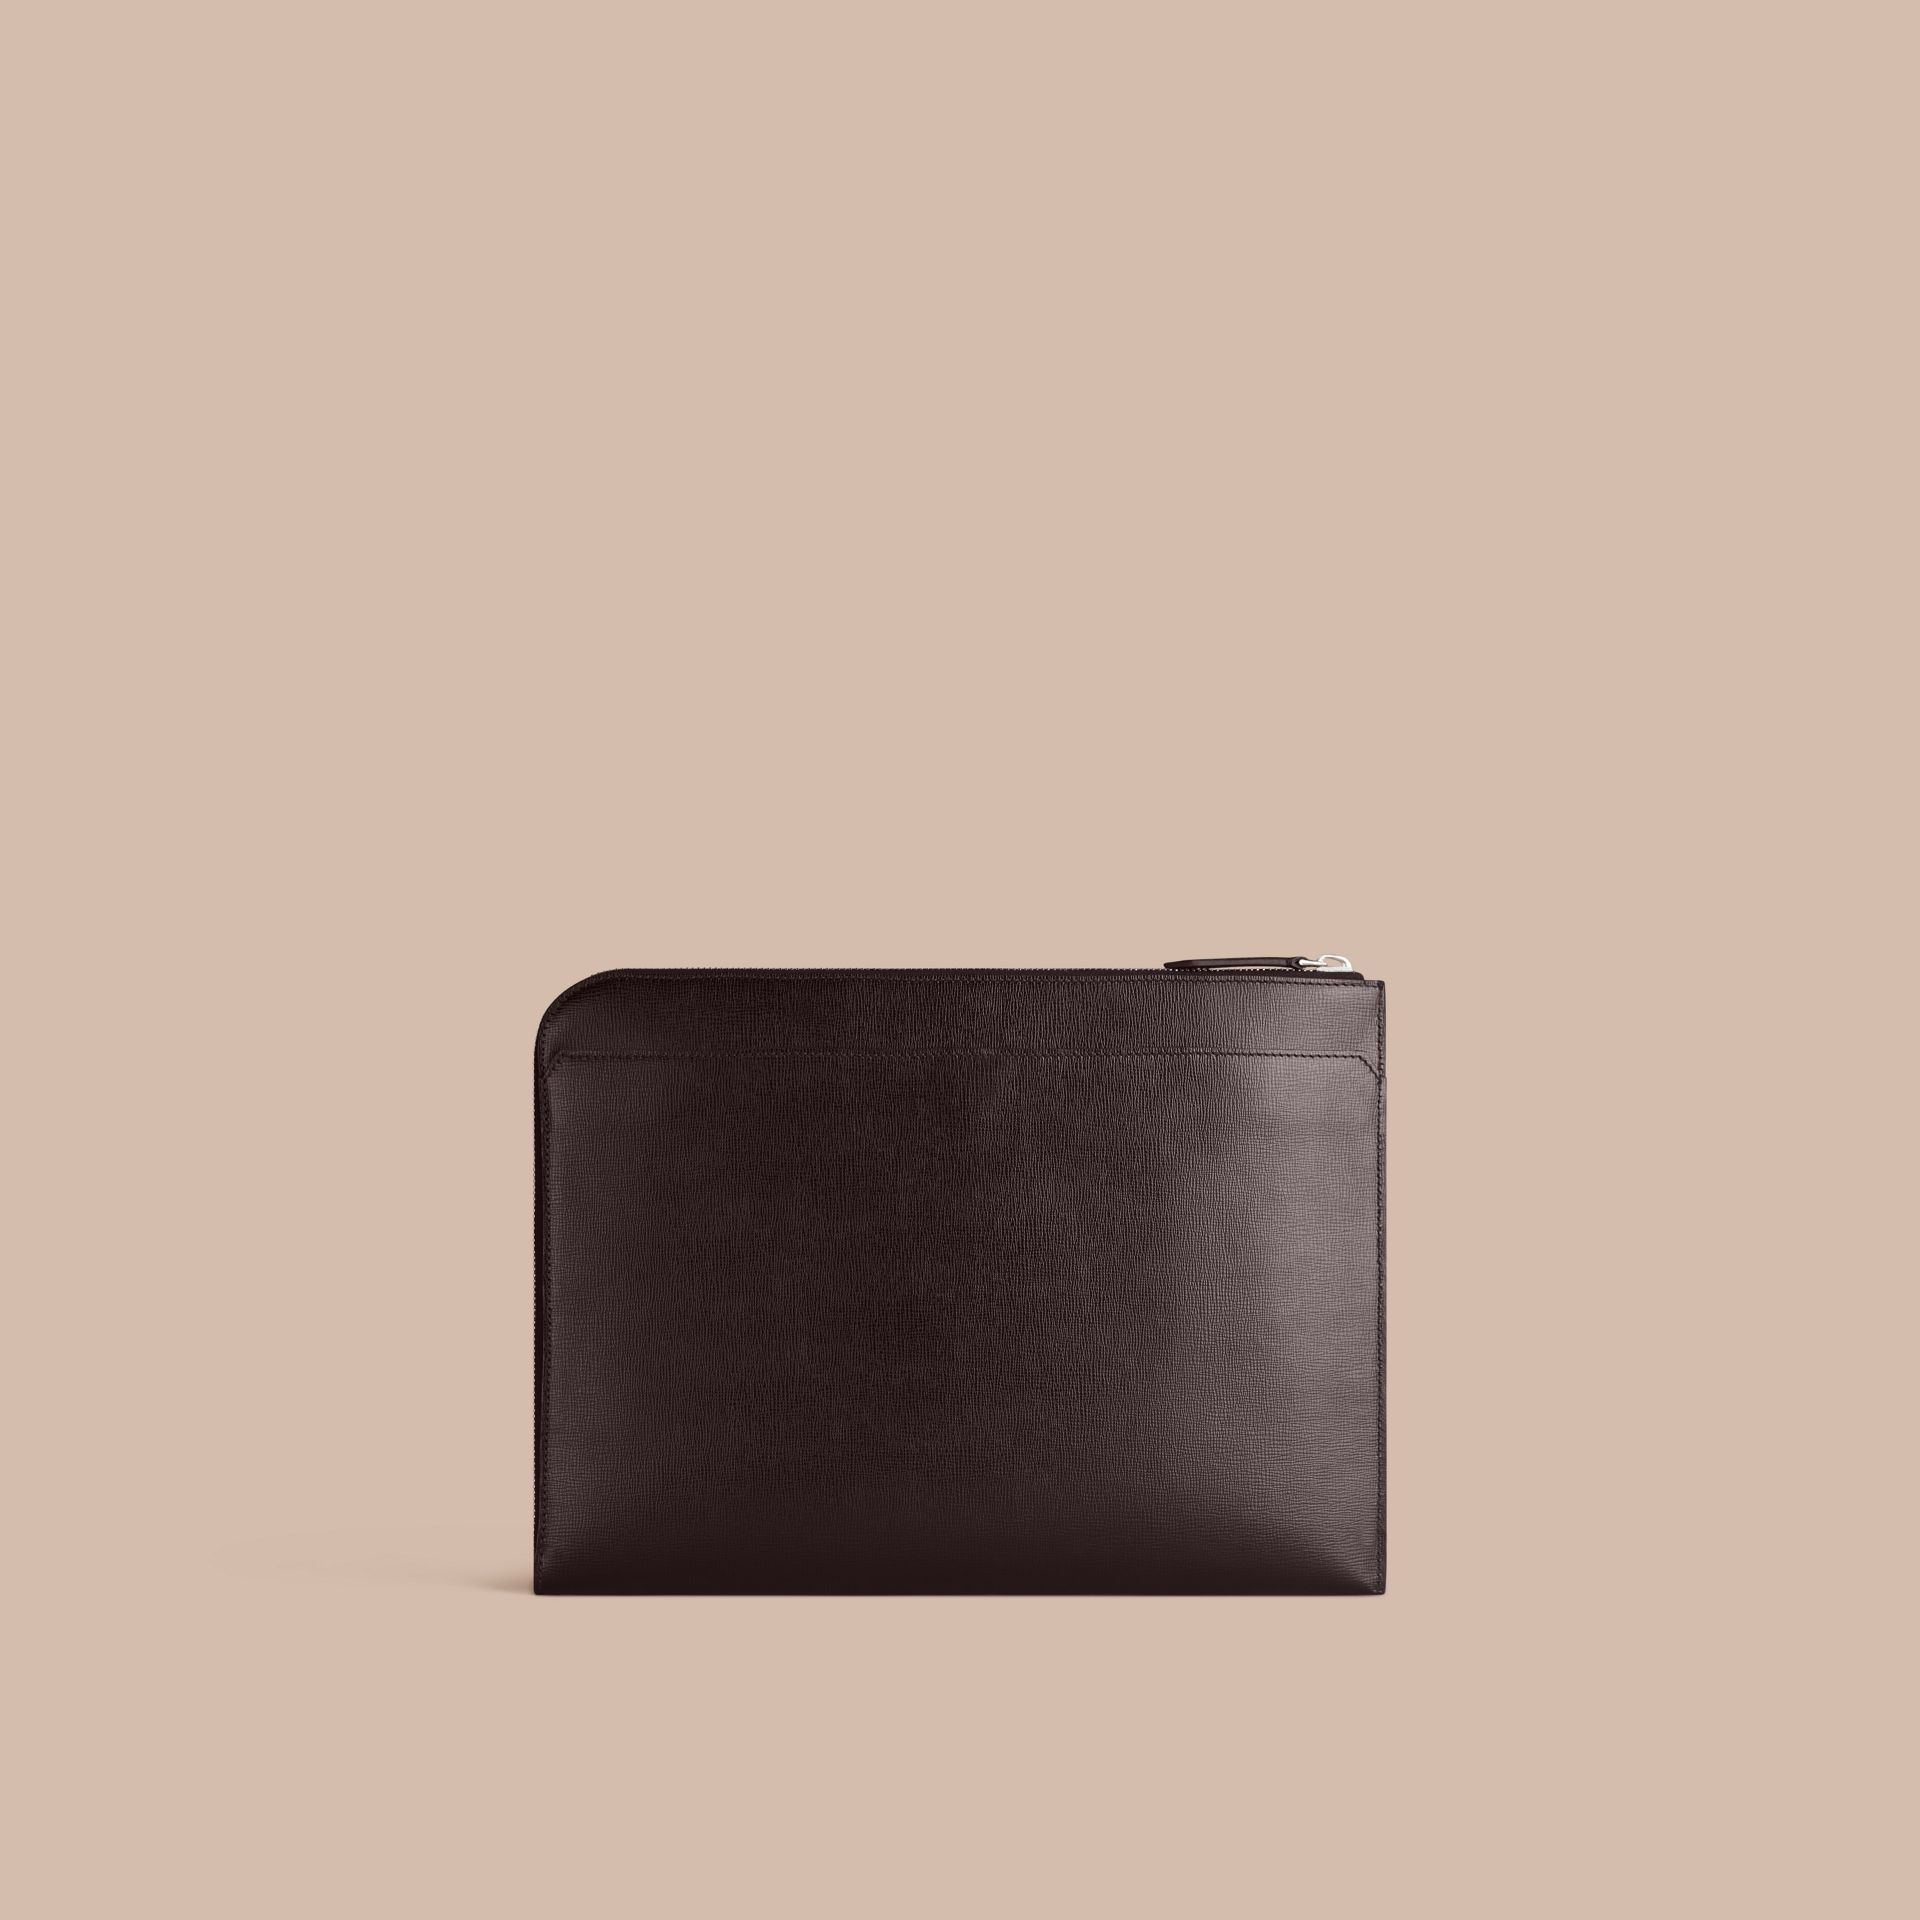 Black London Leather Document Case Black - gallery image 4